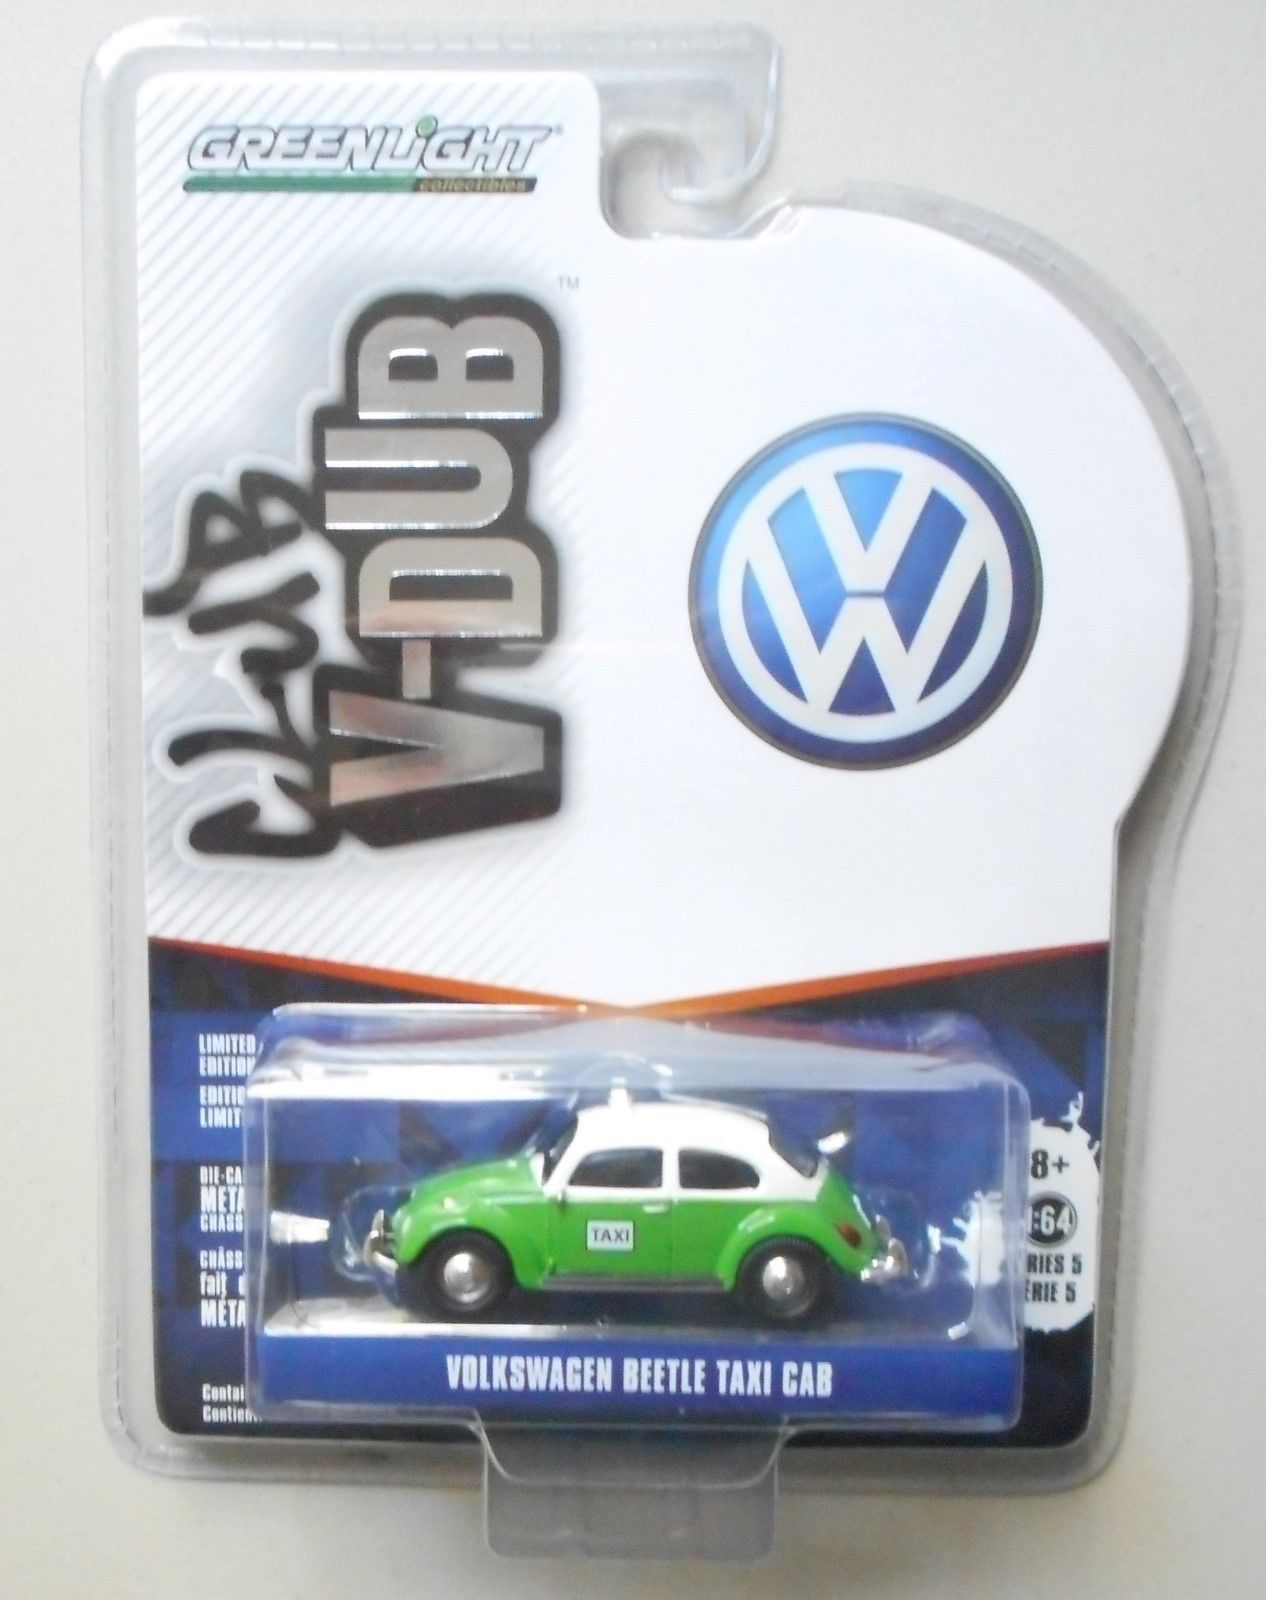 GREEN TAXI BEETLE VW VOLKSWAGEN V-DUB 5 GREENLIGHT DIECAST 1:64